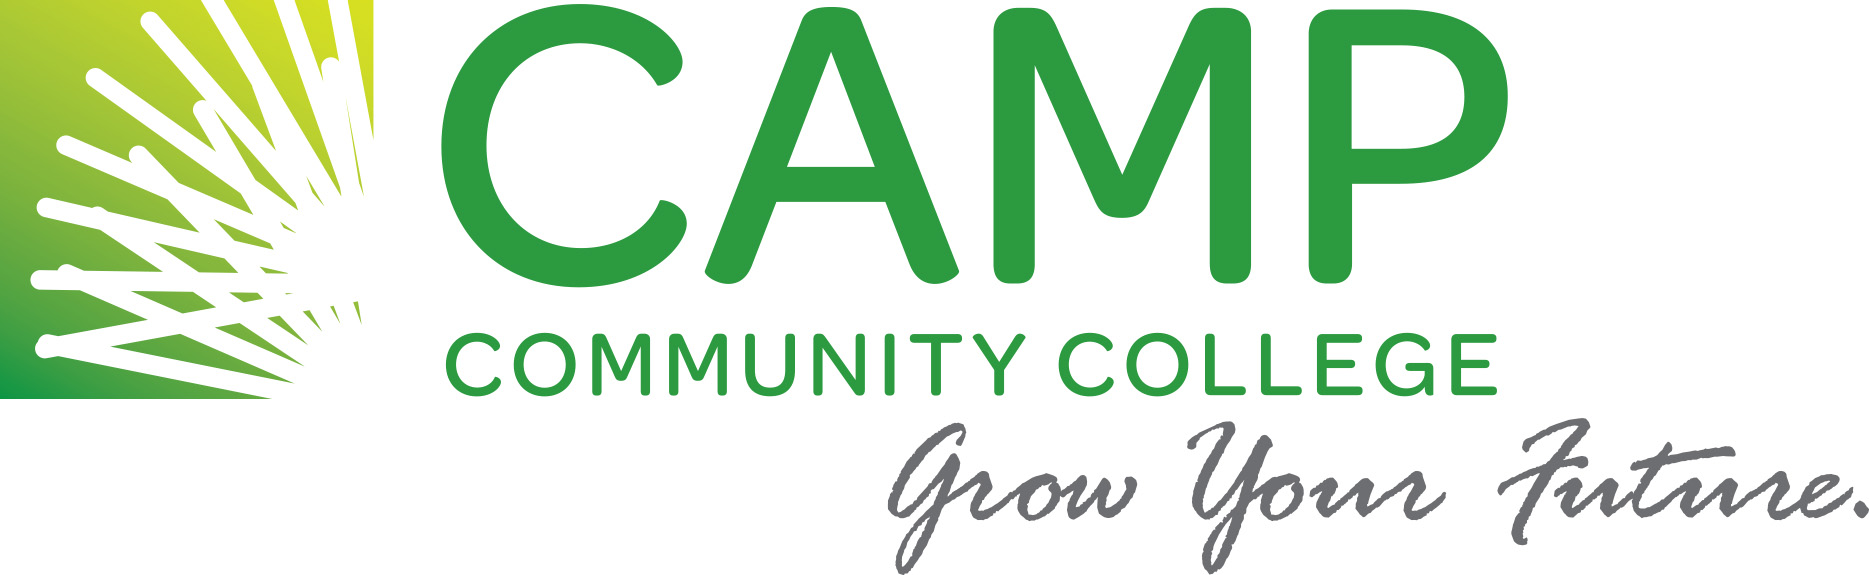 Paul D. Camp Community College continues to provide quality programs, according to regional body for accreditation